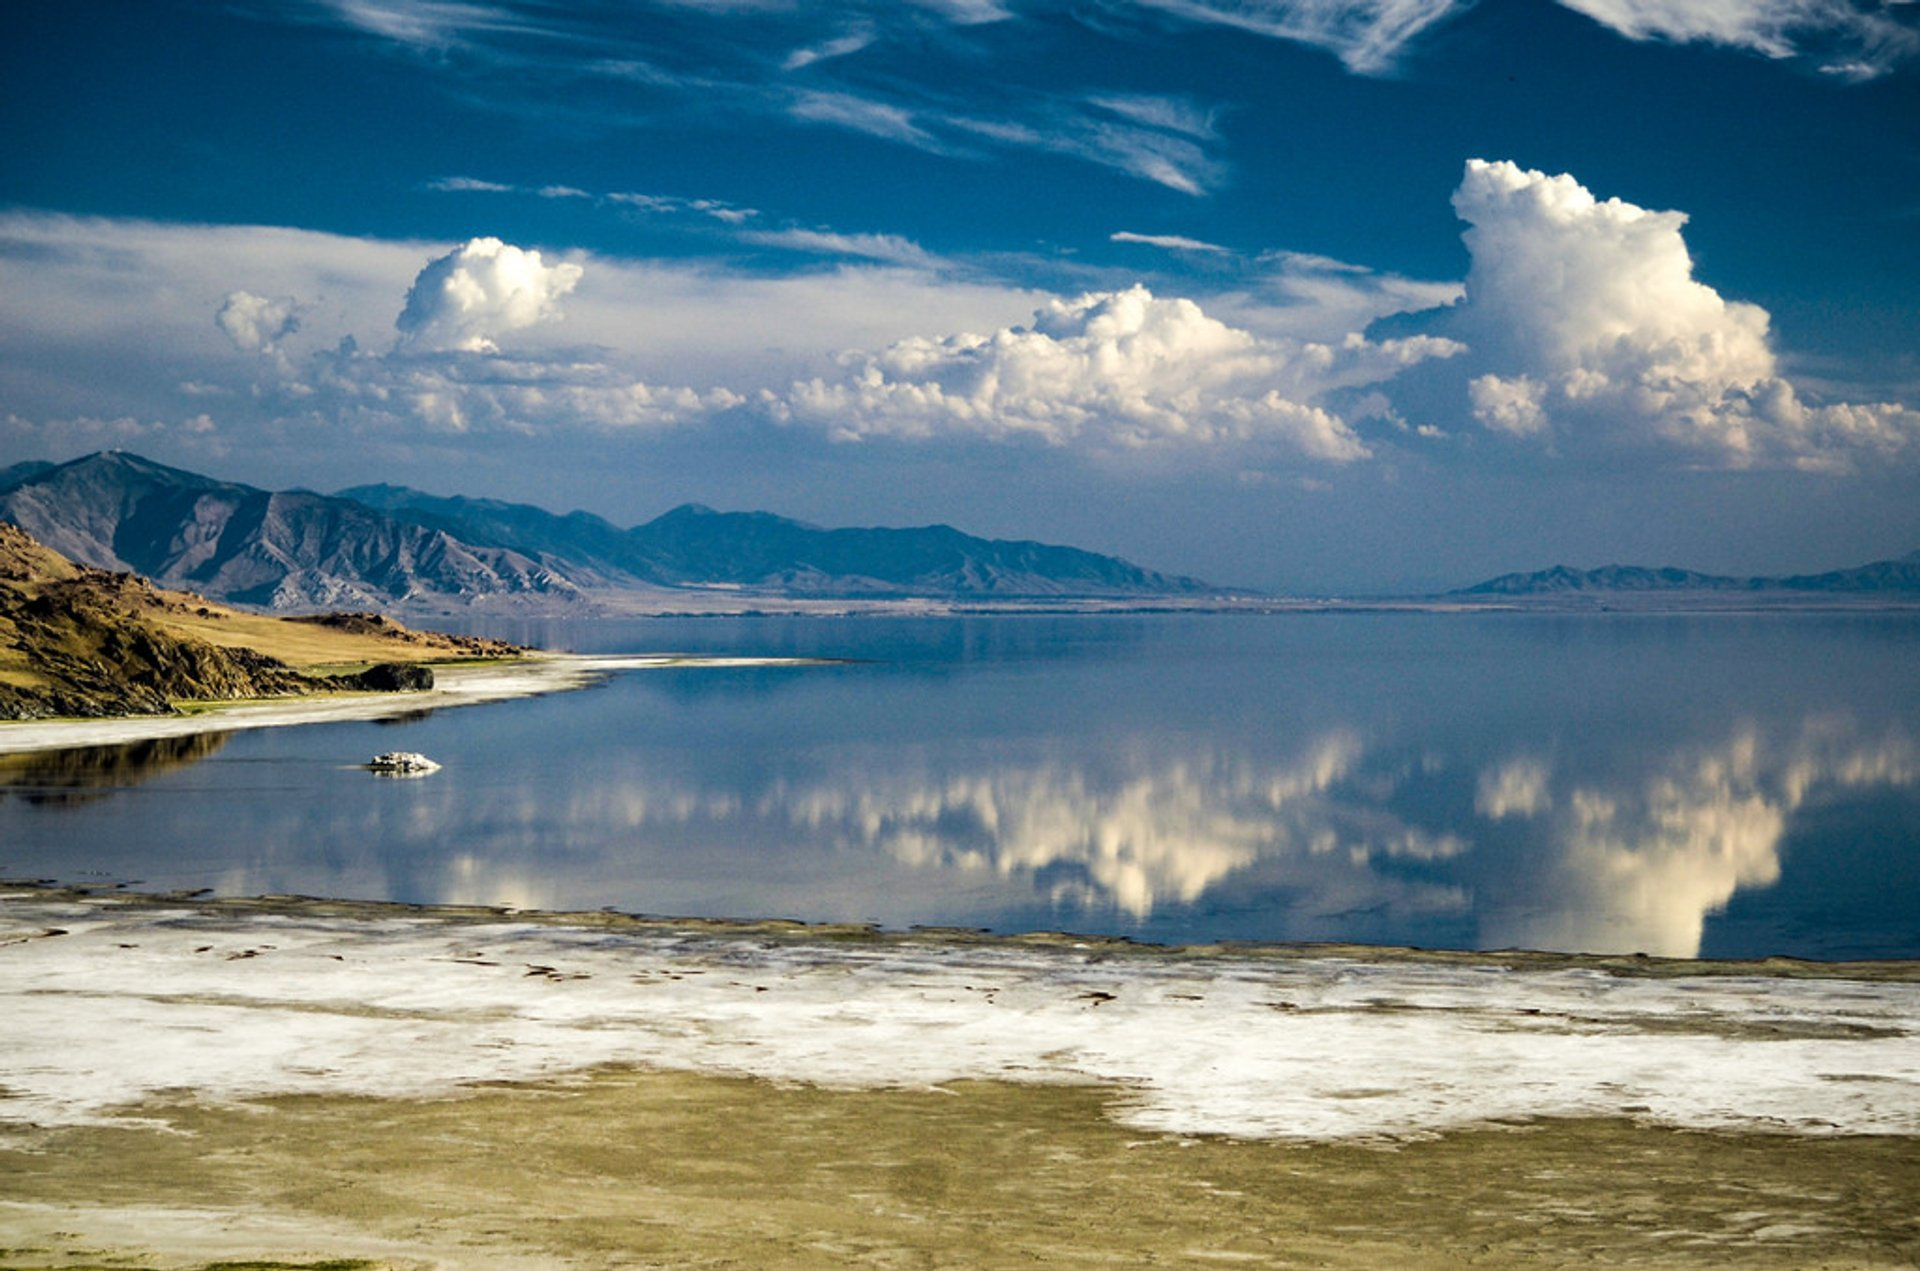 The Great Salt Lake in Utah - Best Season